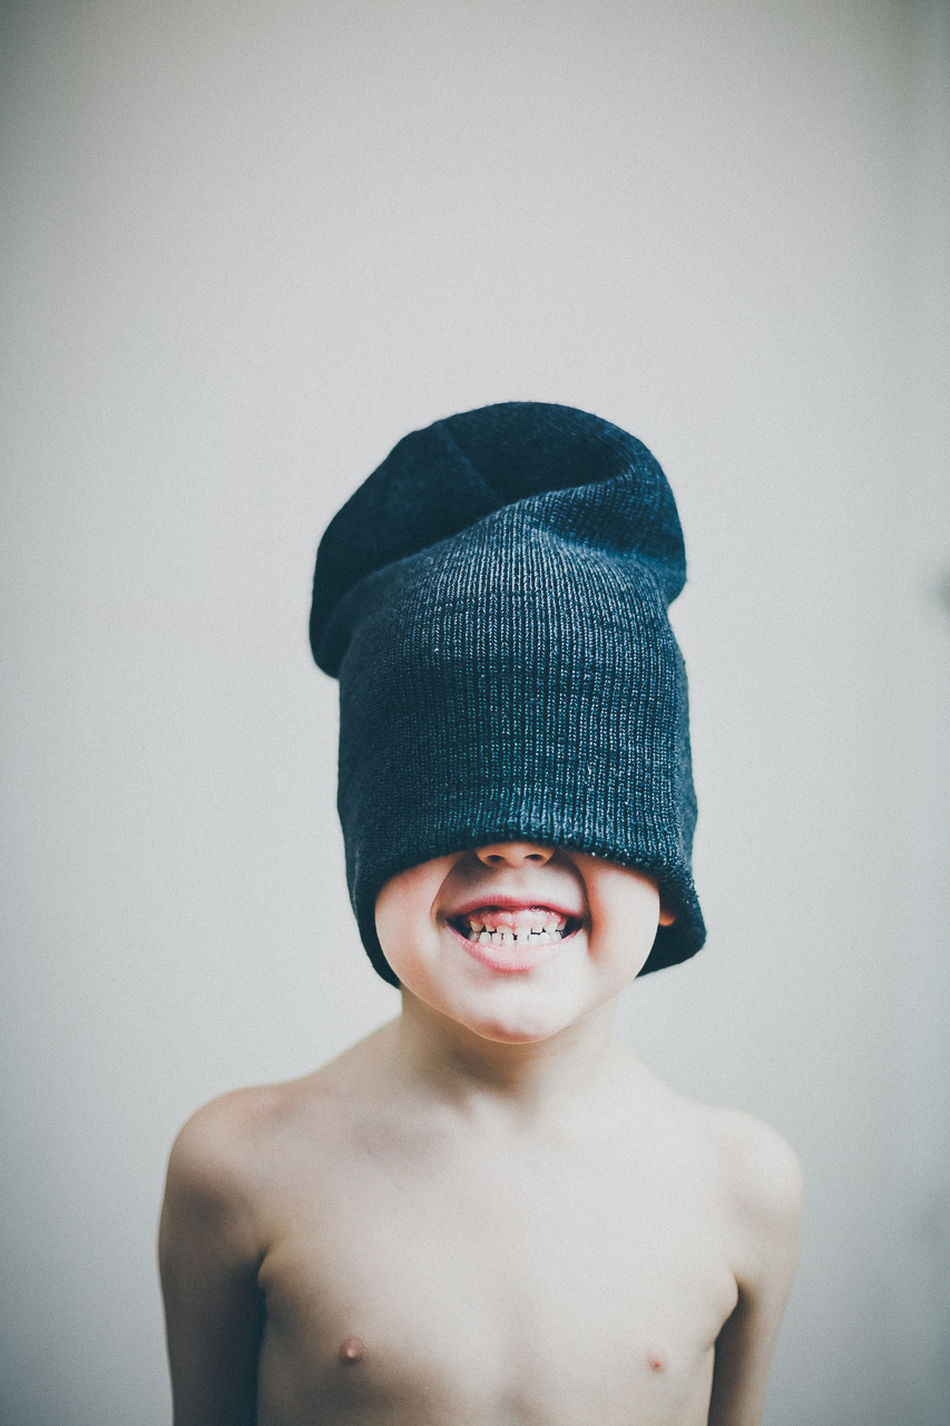 Beautiful stock photos of hat, Boys, Caucasian Ethnicity, Childhood, Clenching Teeth